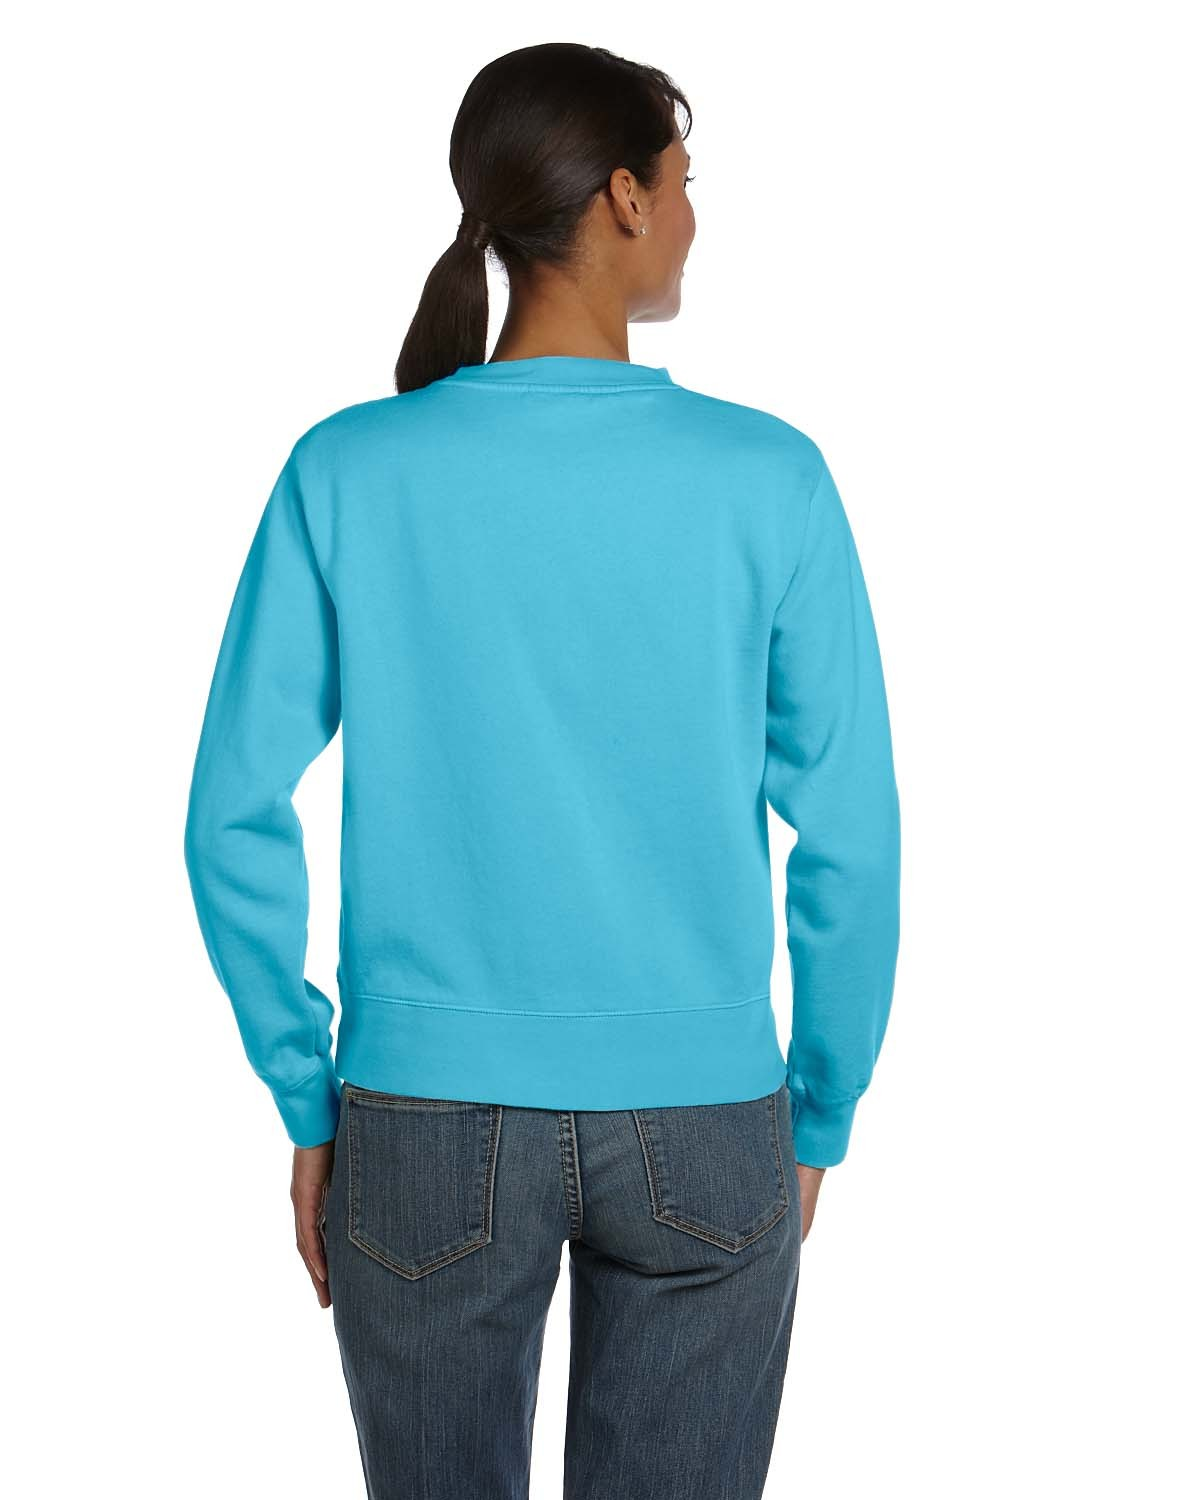 C1596 Comfort Colors LAGOON BLUE